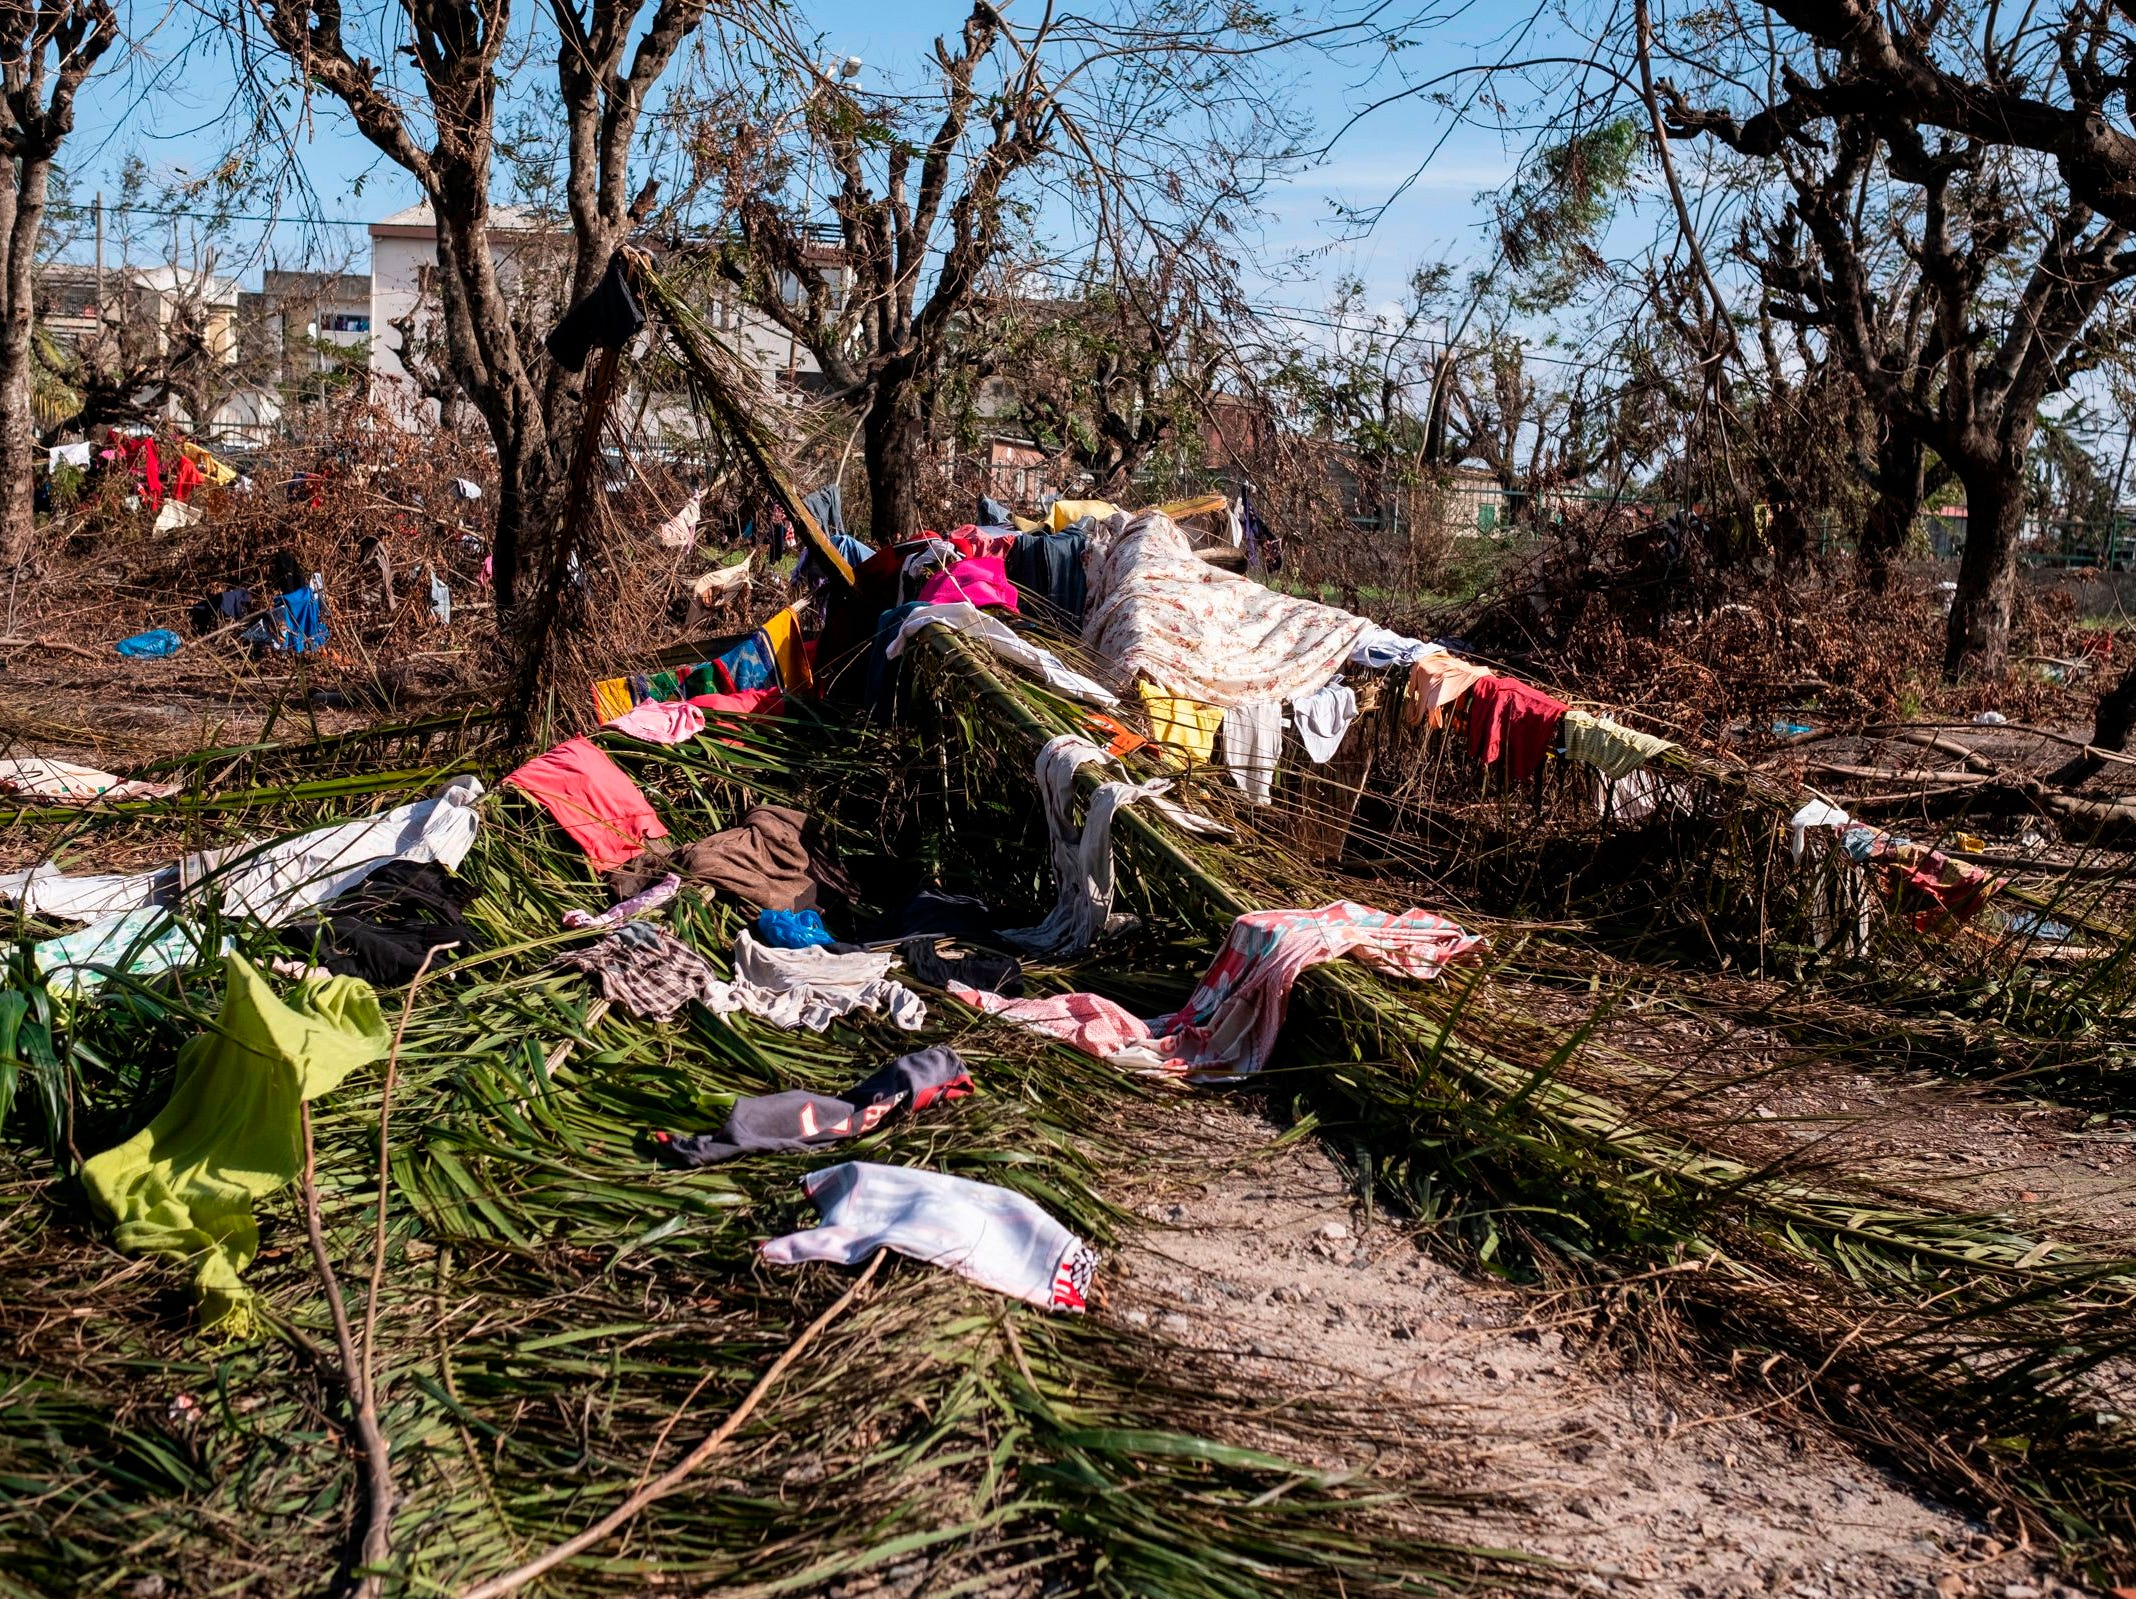 Laundry, placed by people on the fallen palm tree, dry at the Samora Machel High School in Beira, Mozambique, on March 23, 2019. The Samora Machelle High School is one of the places used as a living space for people from Buzi, Mozambique that has been displaced by the floods caused by Cyclone Idai. Cyclone Idai has affected many people living in the Beira and surrounding areas of Mozambique. Thousands of people have been displaced.